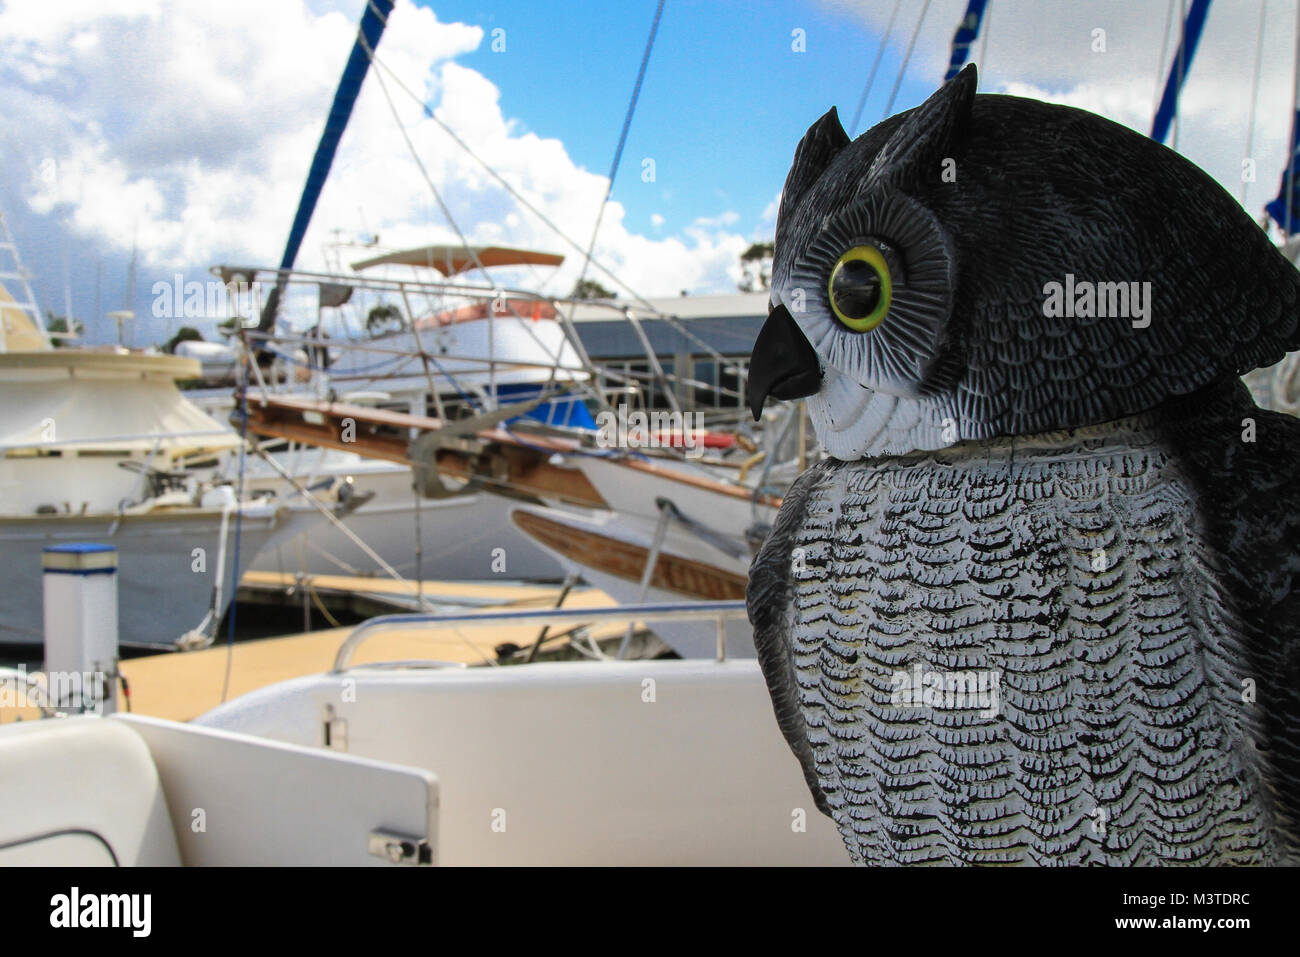 Owl deterrent at a marina, Queensland, Australia. Yachting, boating. - Stock Image